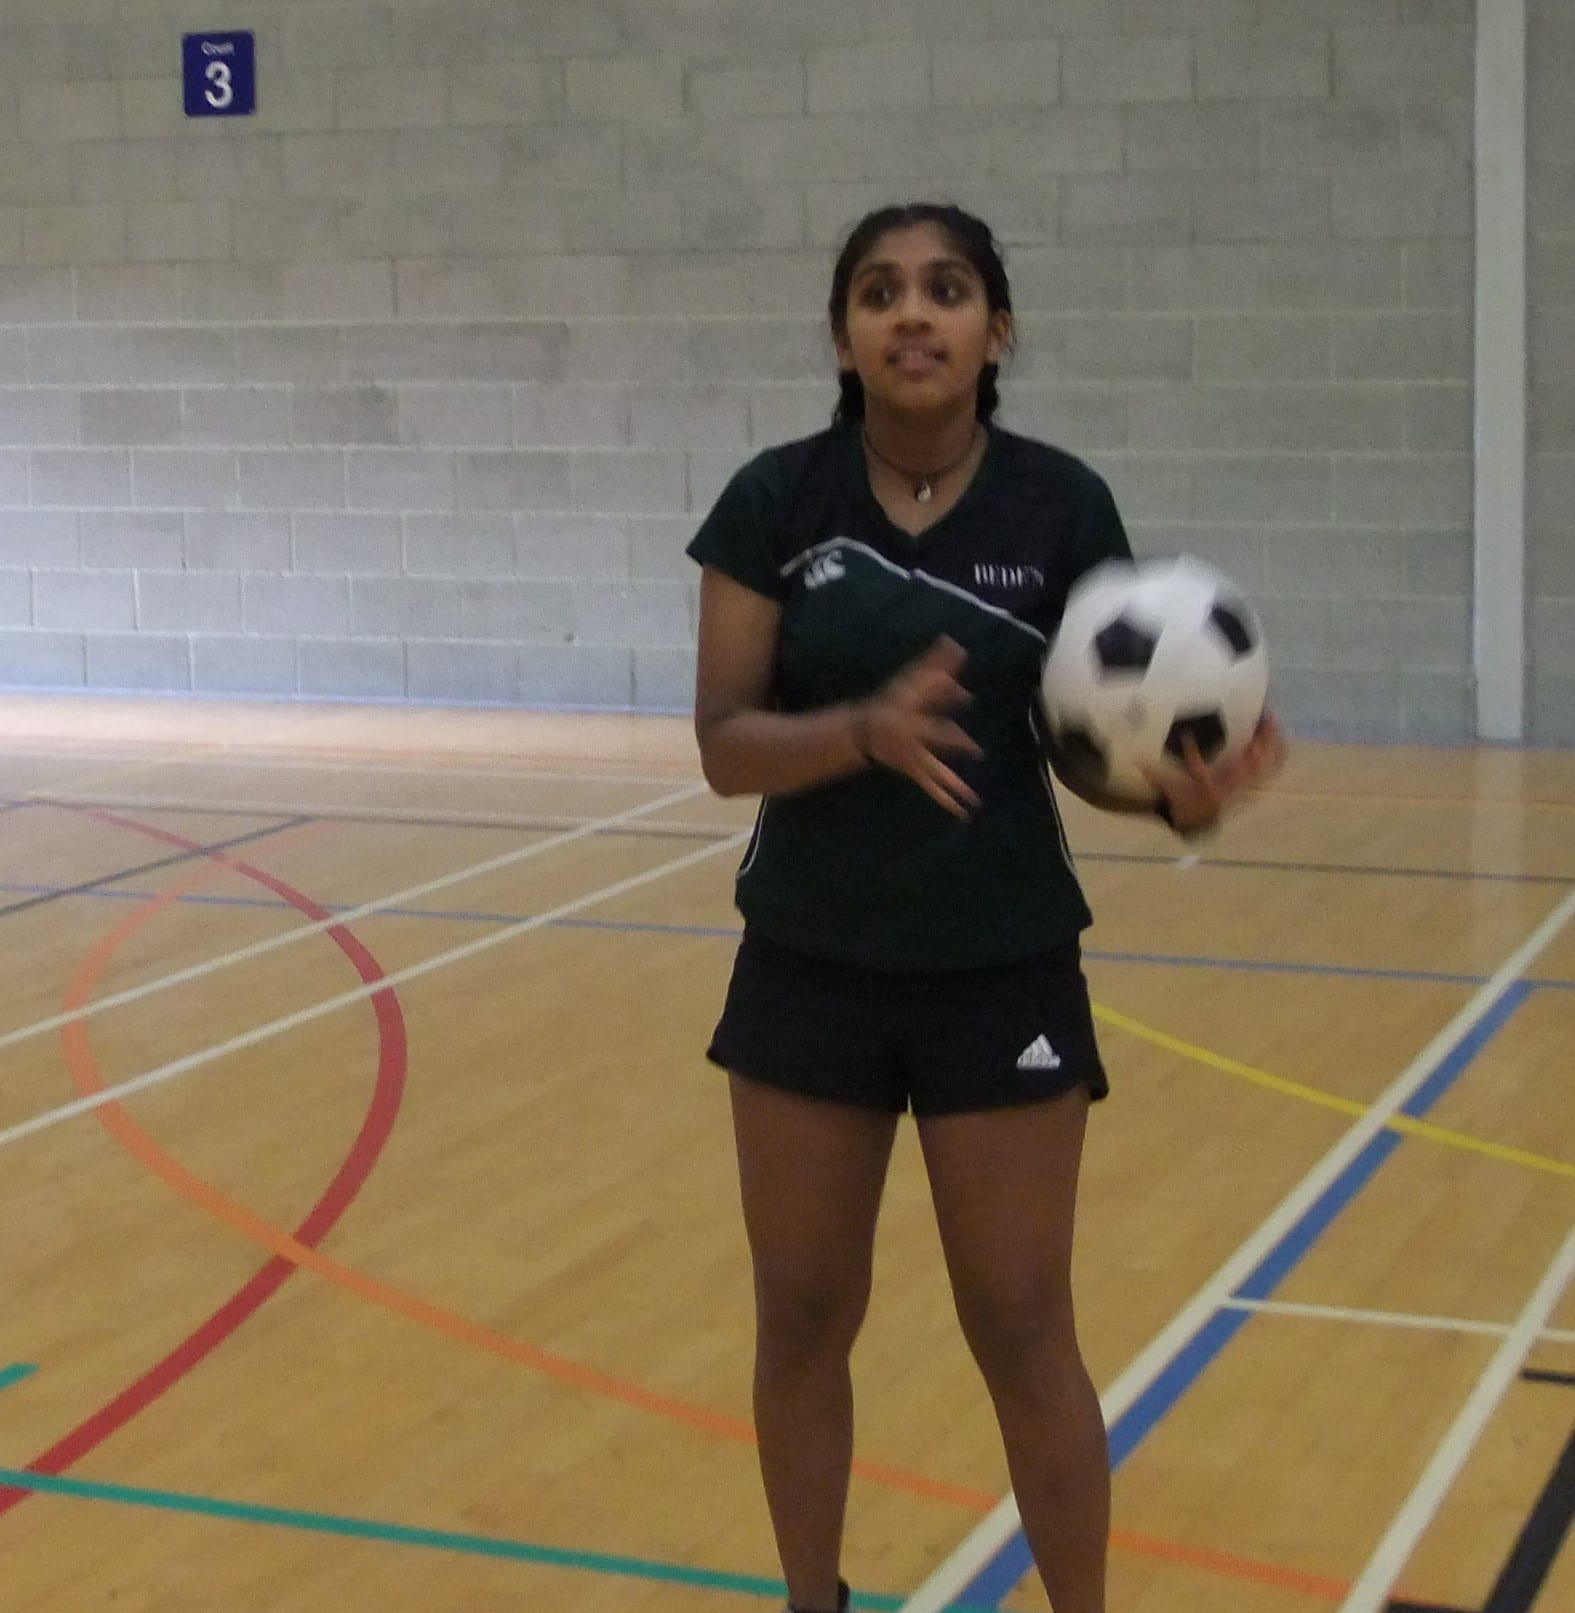 a female student holding a ball